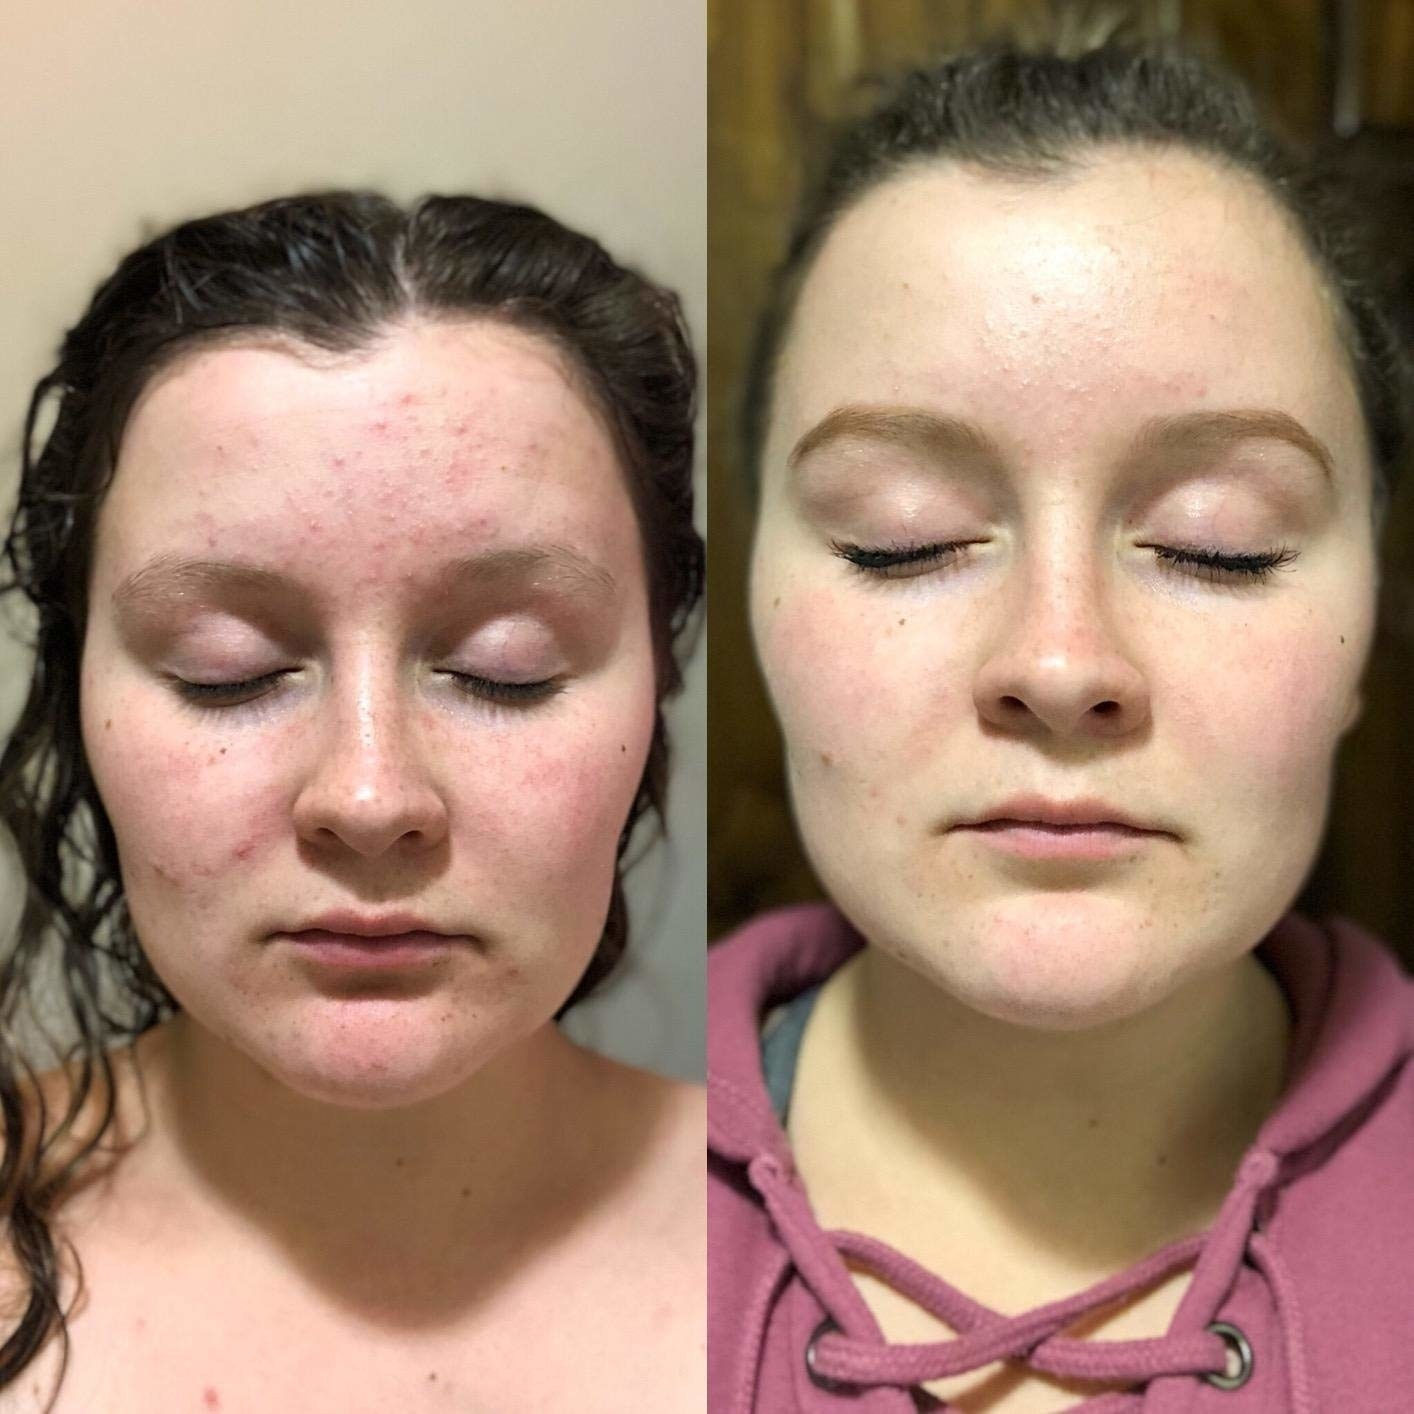 A reviewer's face before/after showing reduced acne and redness